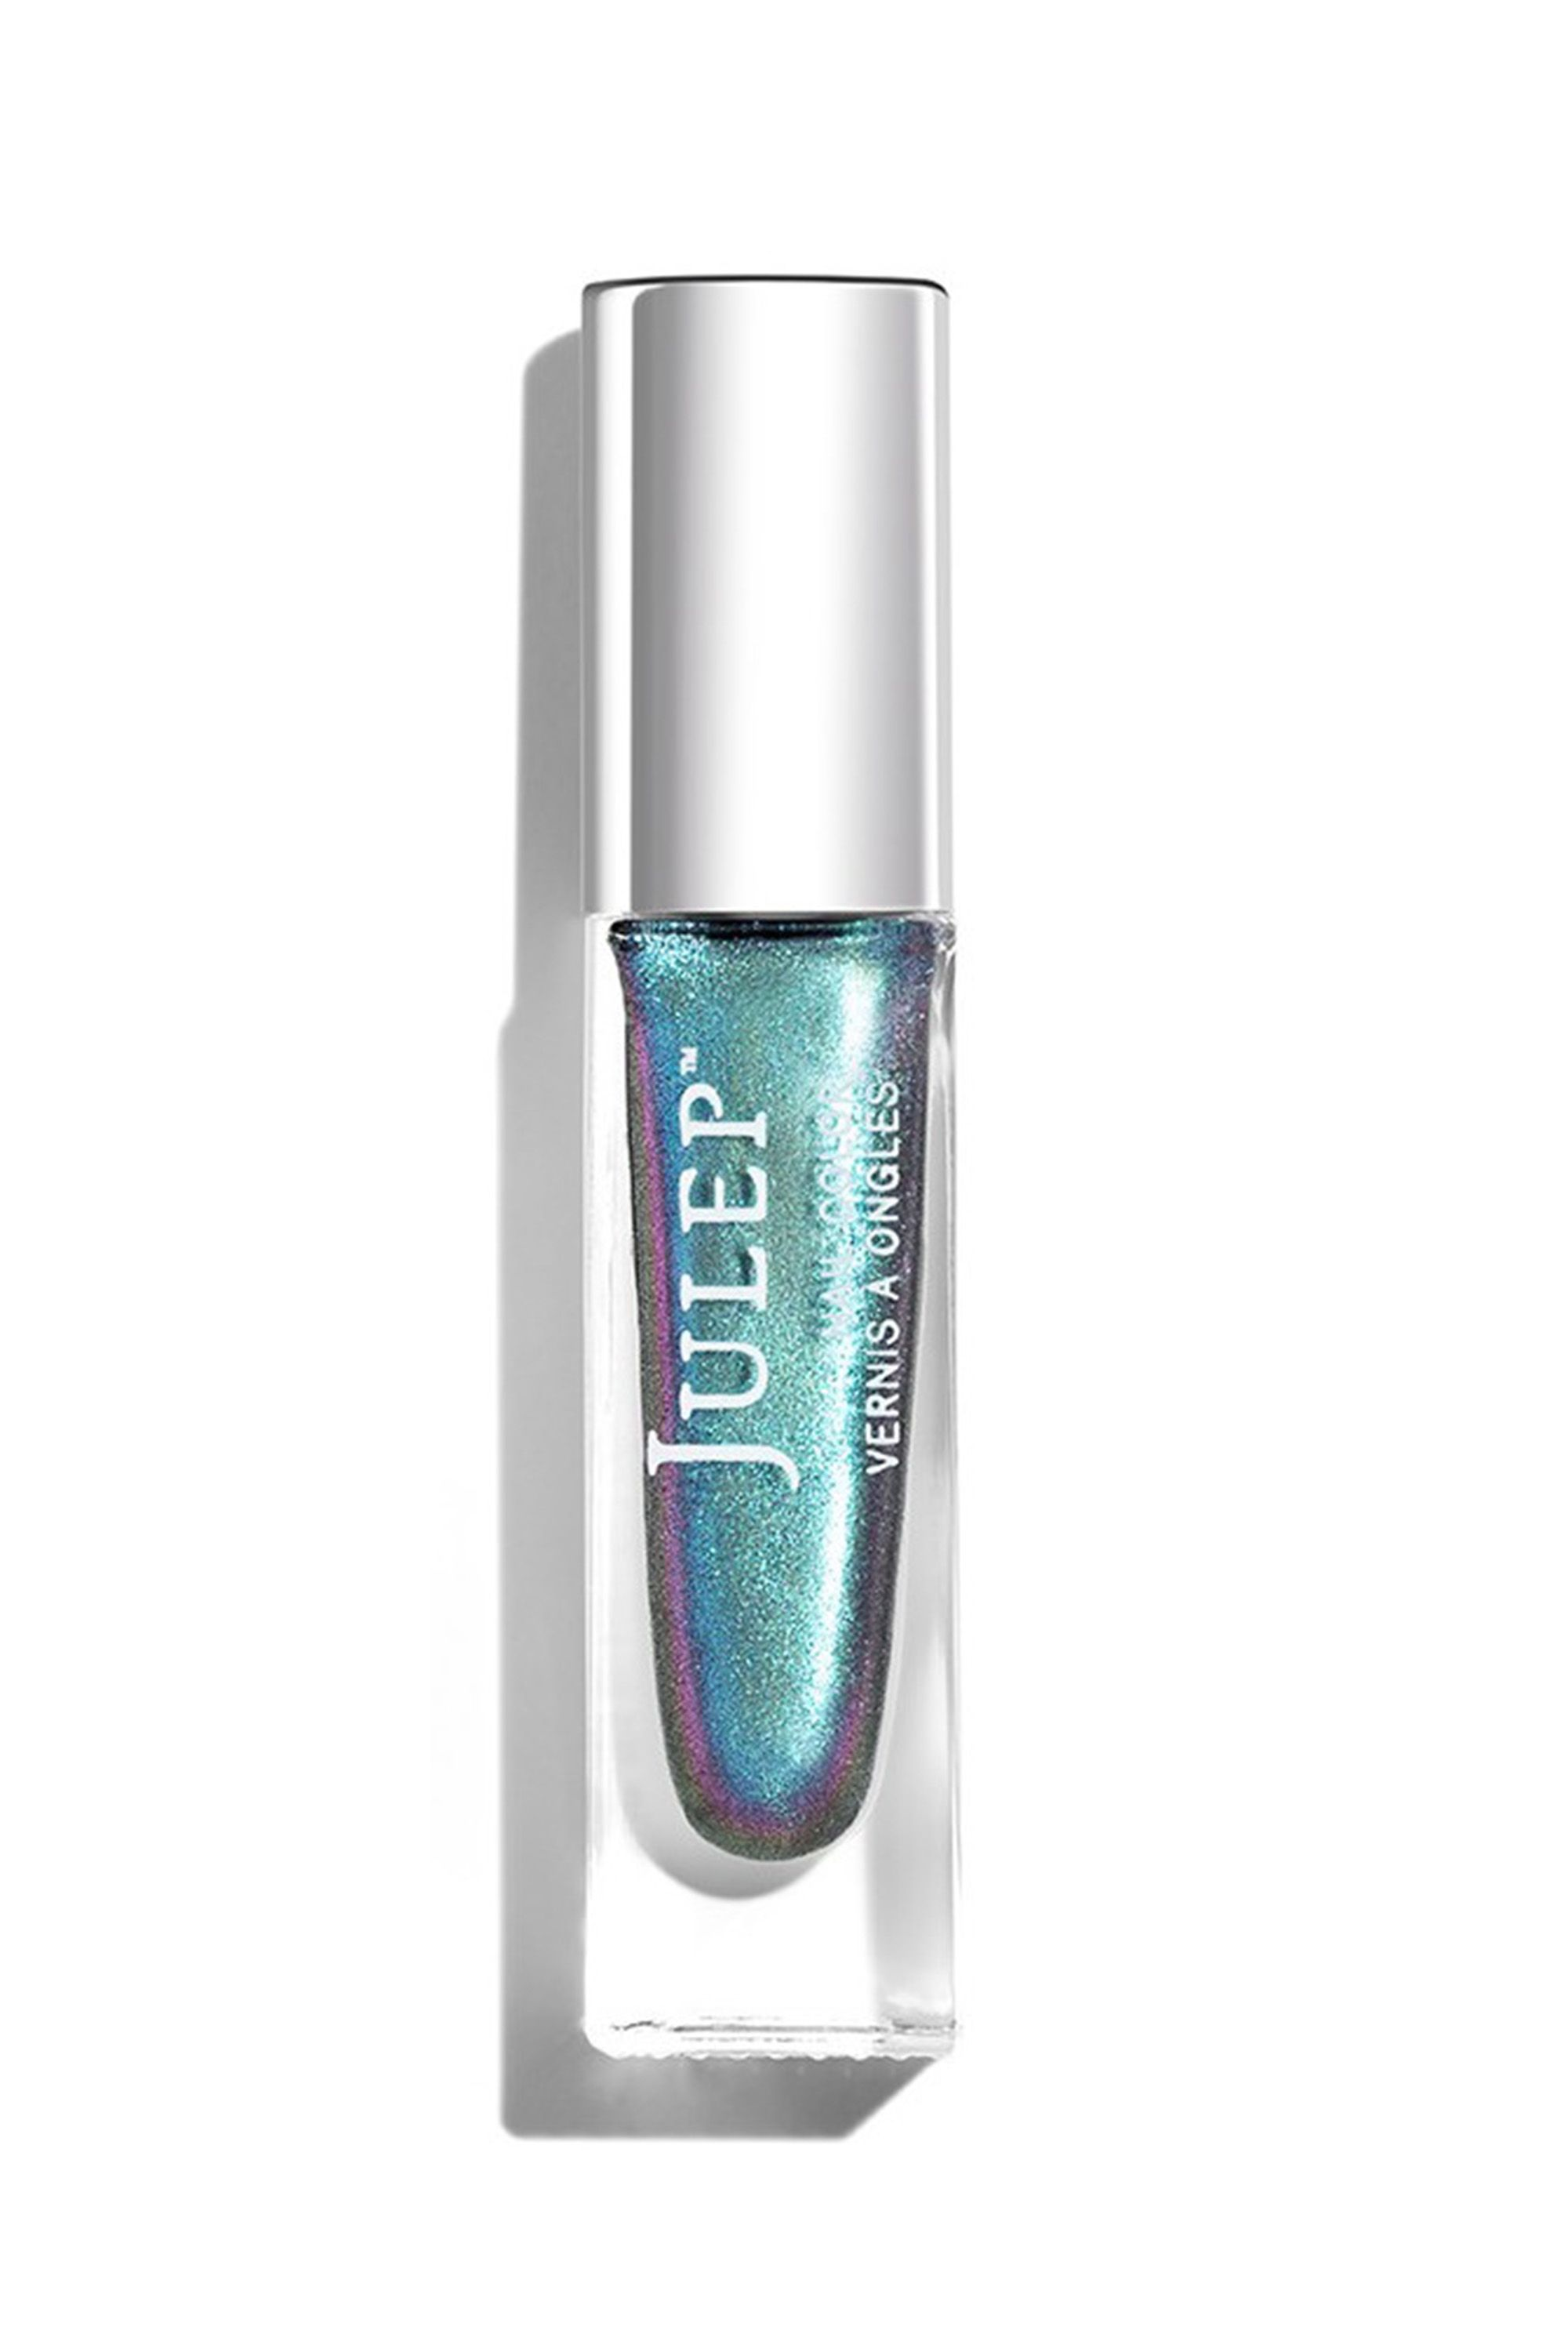 """<p>Julep Zodiac Collection Nail Polish in Aquarius, $14;<a href=""""http://www.ulta.com/zodiac-collection-nail-polish?productId=xlsImpprod16281047&sku=2515259&cmpid=PS_Non!google!Product_Listing_Ads&cagpspn=pla&CATCI=pla-258456467402&CAAGID=33247891643&CAWELAID=330000200001188269&catargetid=330000200000860972&cadevice=c&gclid=COuVoMbn5dQCFctLDQodz8sJDA"""" target=""""_blank"""" data-tracking-id=""""recirc-text-link"""">ulta.com</a> </p><p><span class=""""redactor-invisible-space"""" data-verified=""""redactor"""" data-redactor-tag=""""span"""" data-redactor-class=""""redactor-invisible-space""""></span></p>"""